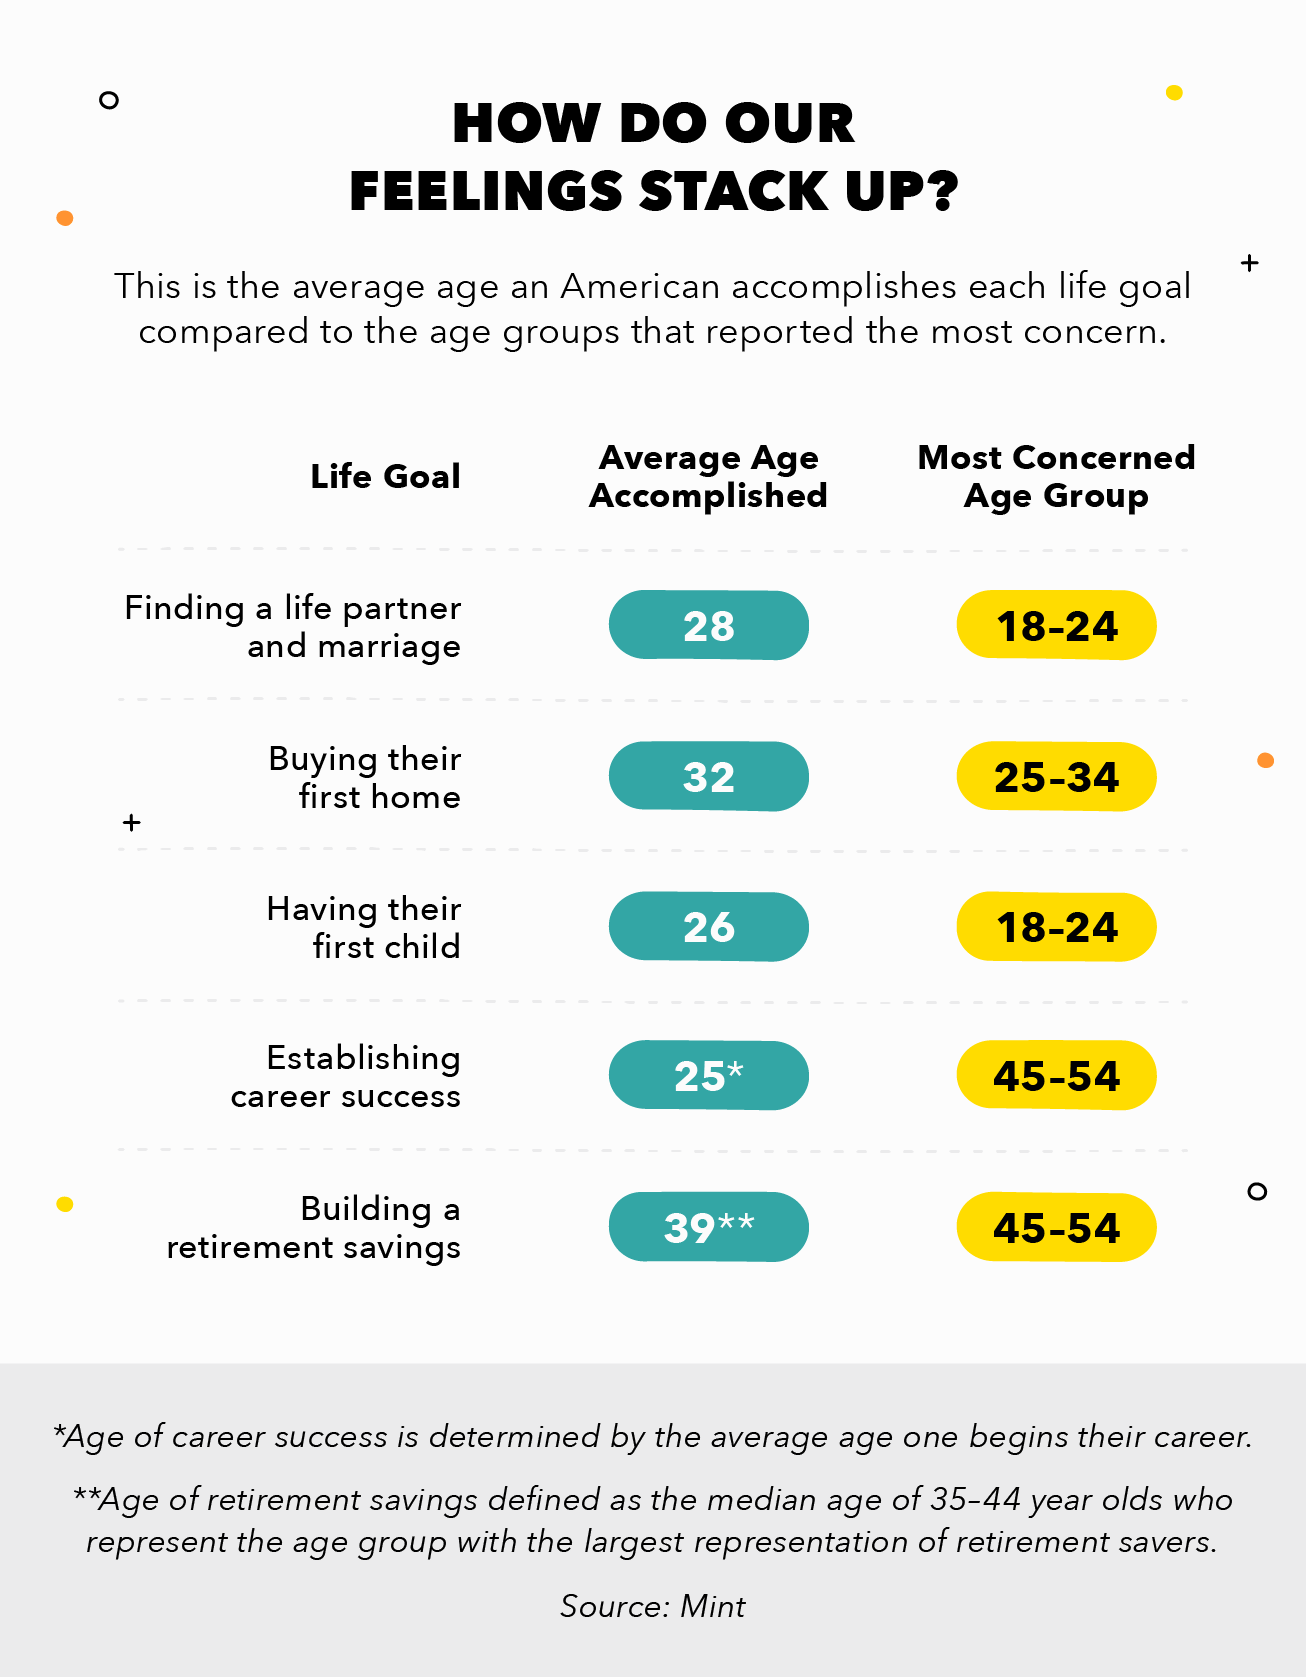 Compare When Americans Reach These Life Milestones with Age Most Affected